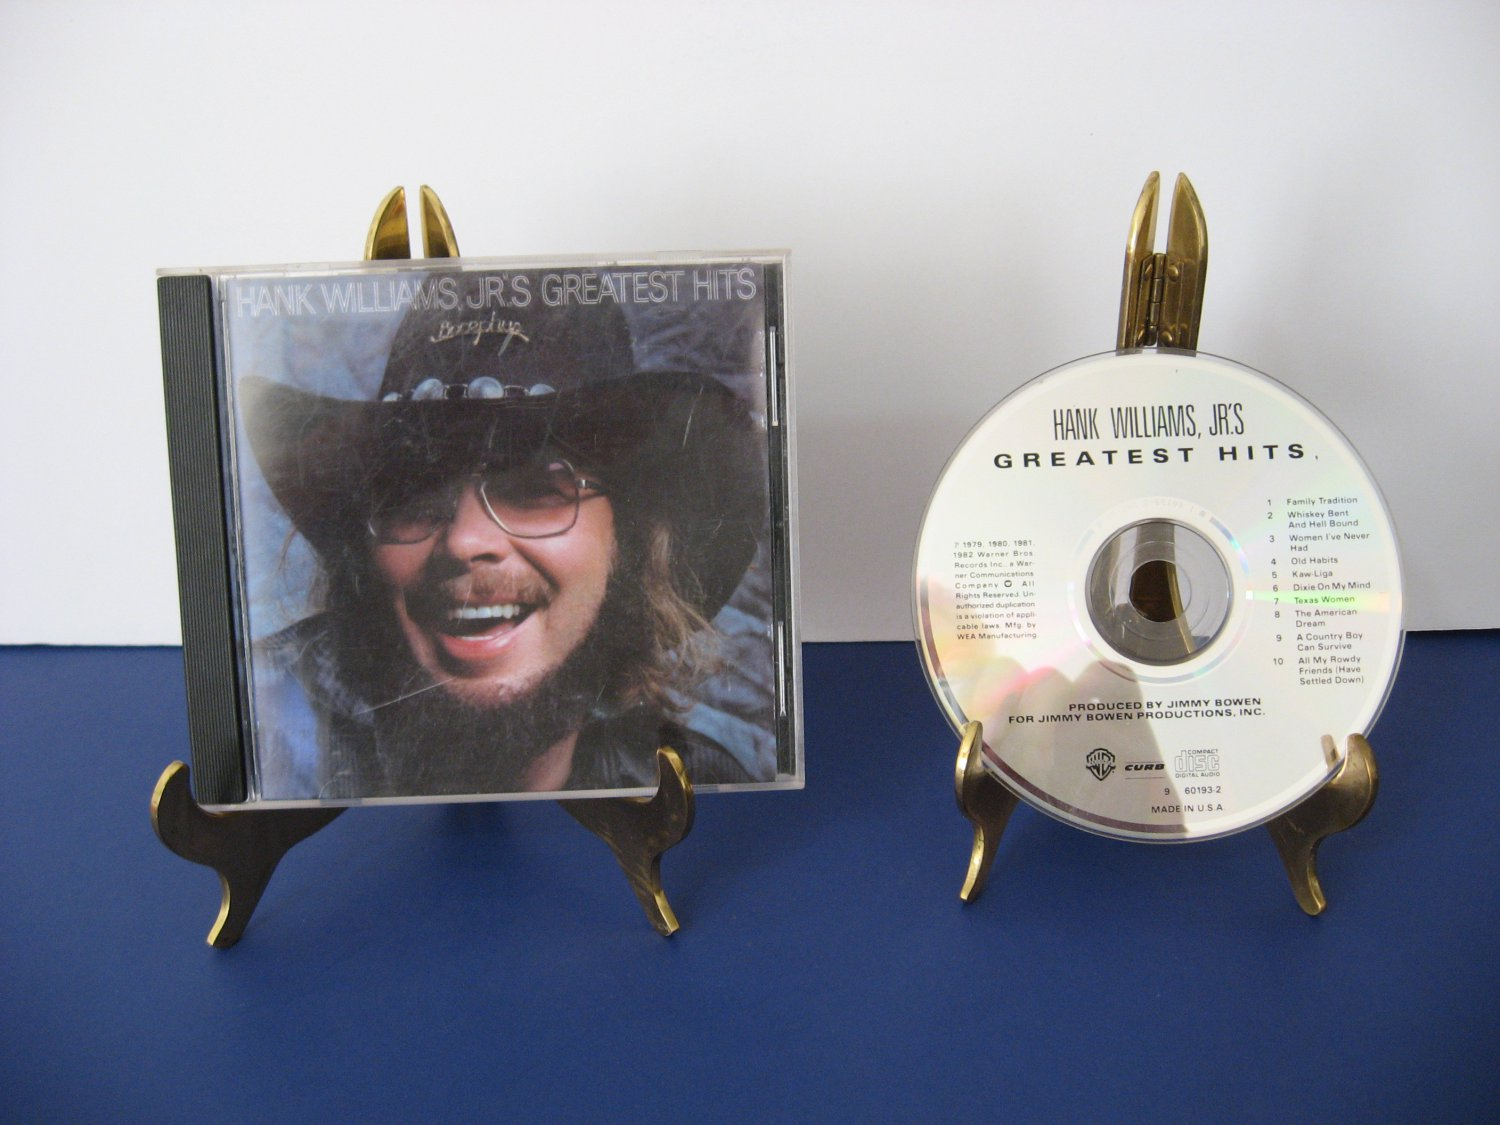 Hank Williams Jr. - Greatest Hits - Compact Disc